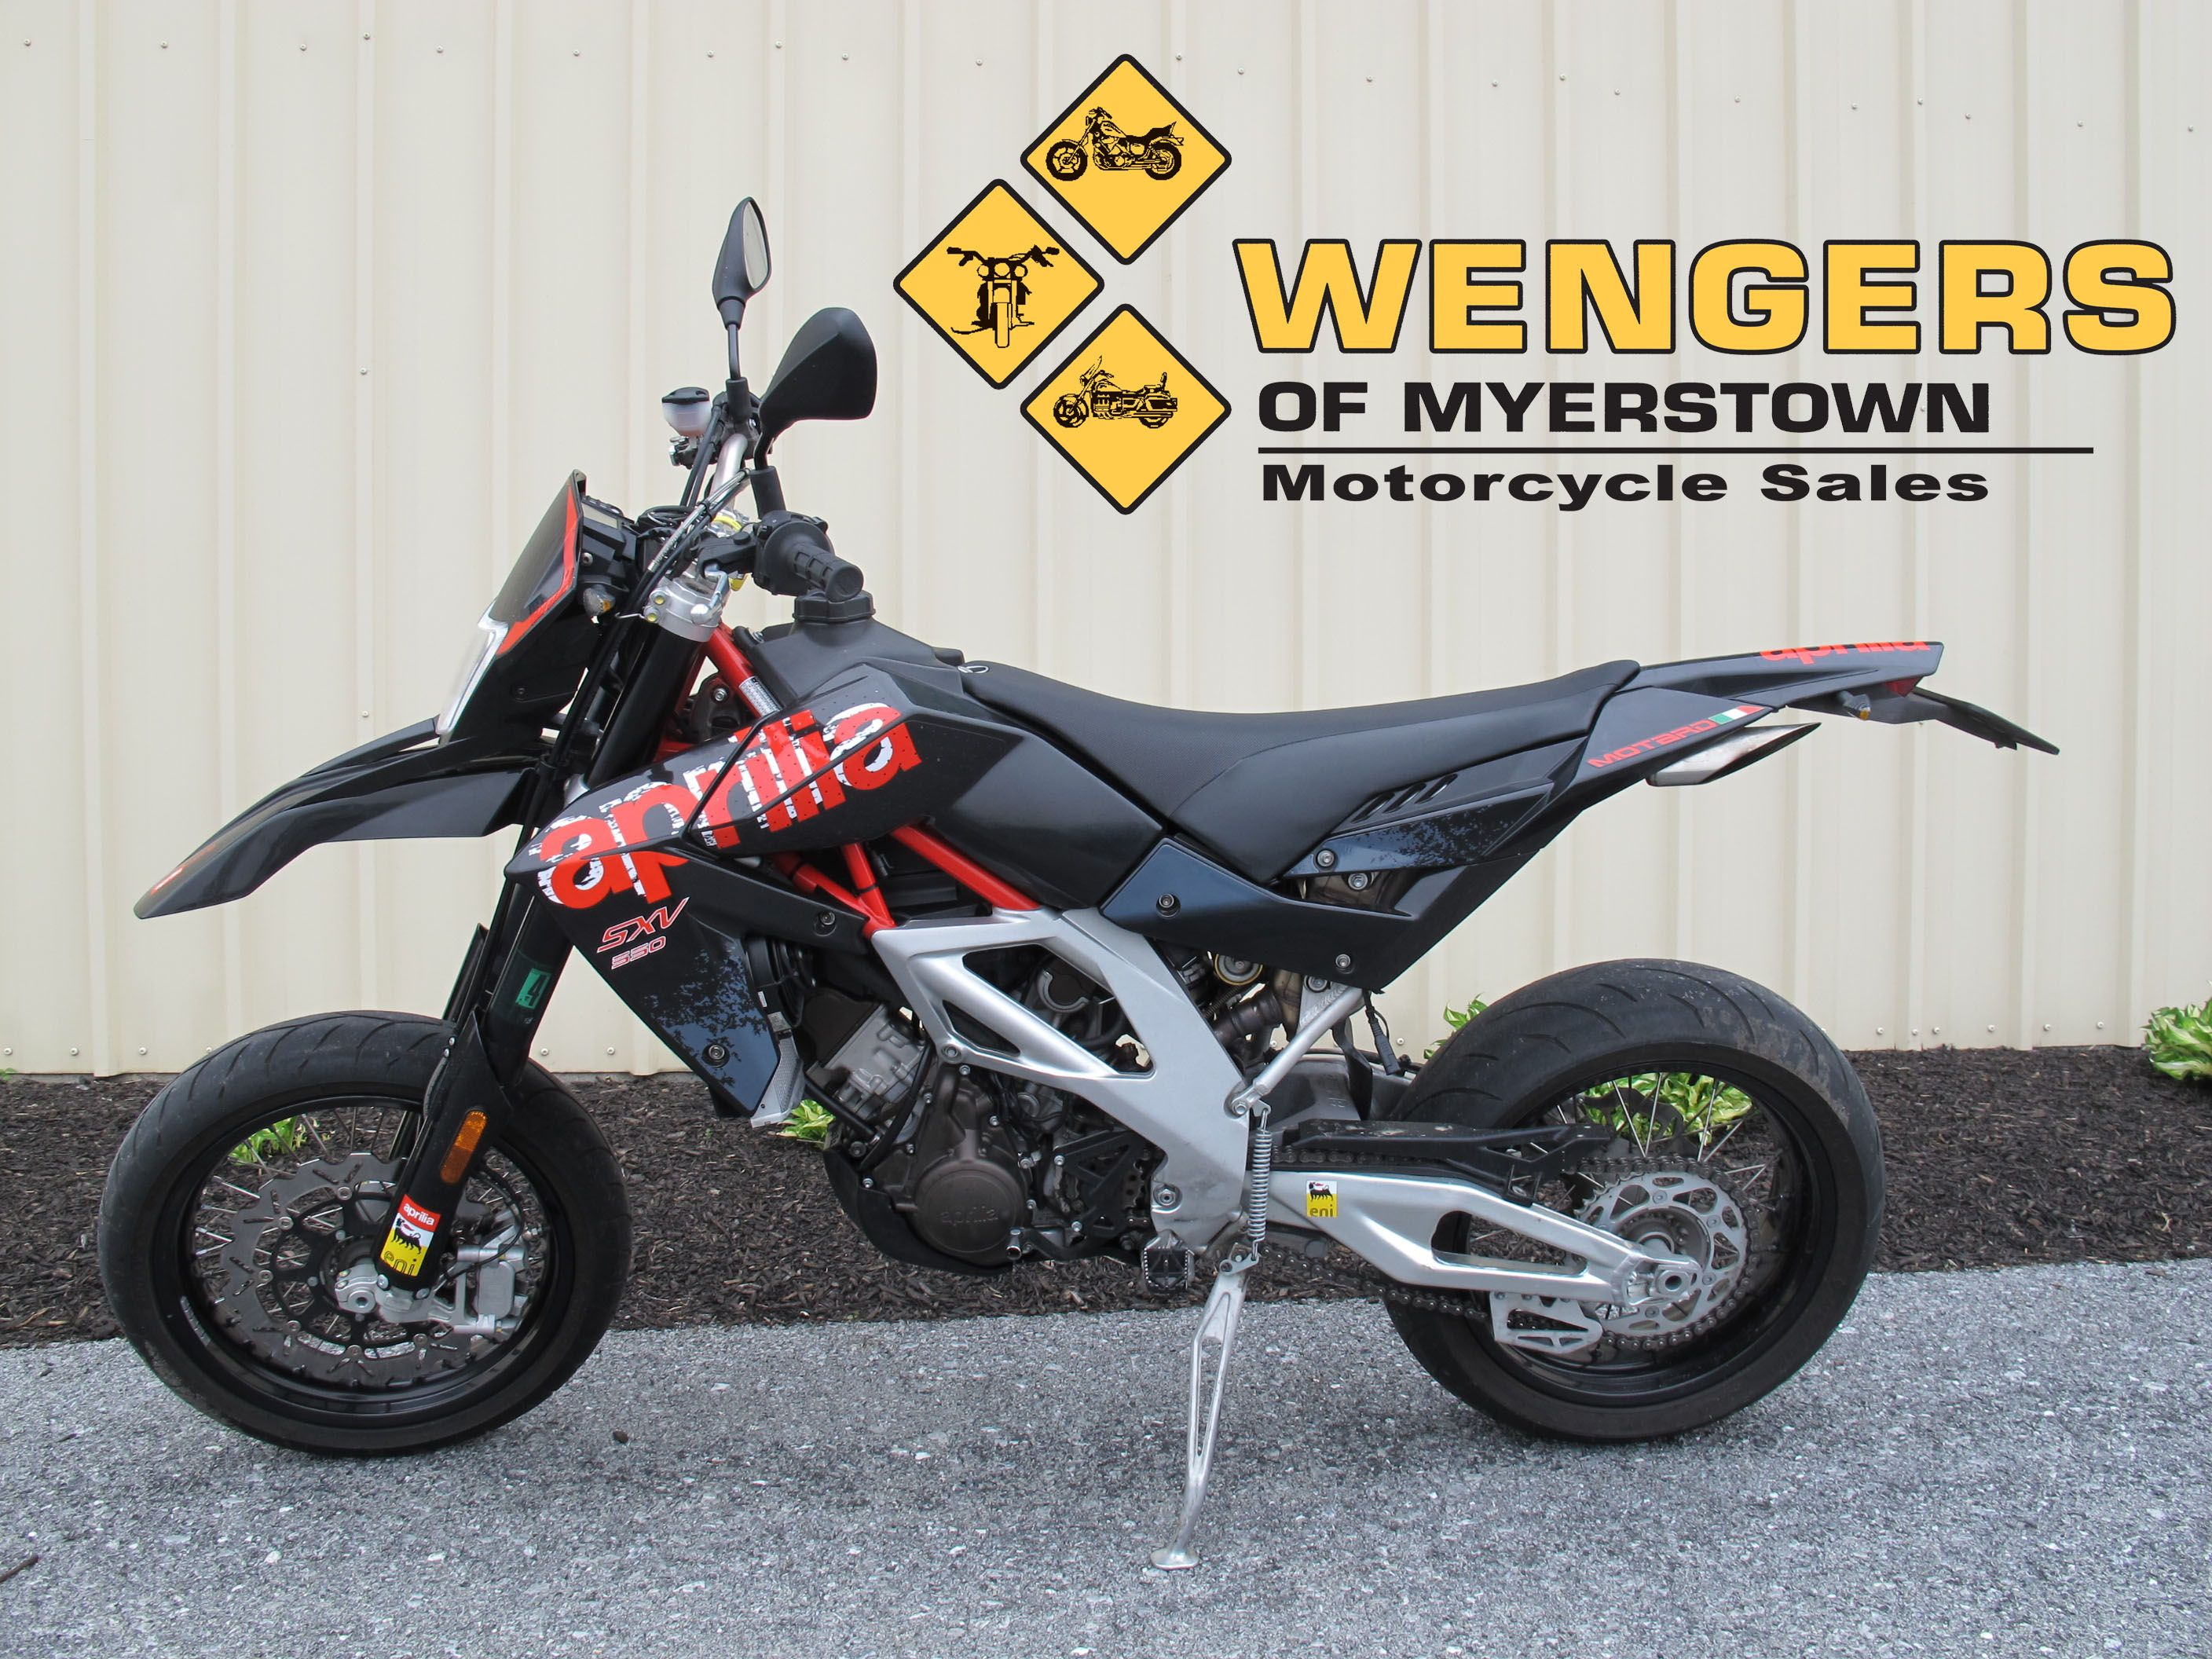 Aprilia Sxv 550 Supermoto Motorcycles For Sale At Wengers Of